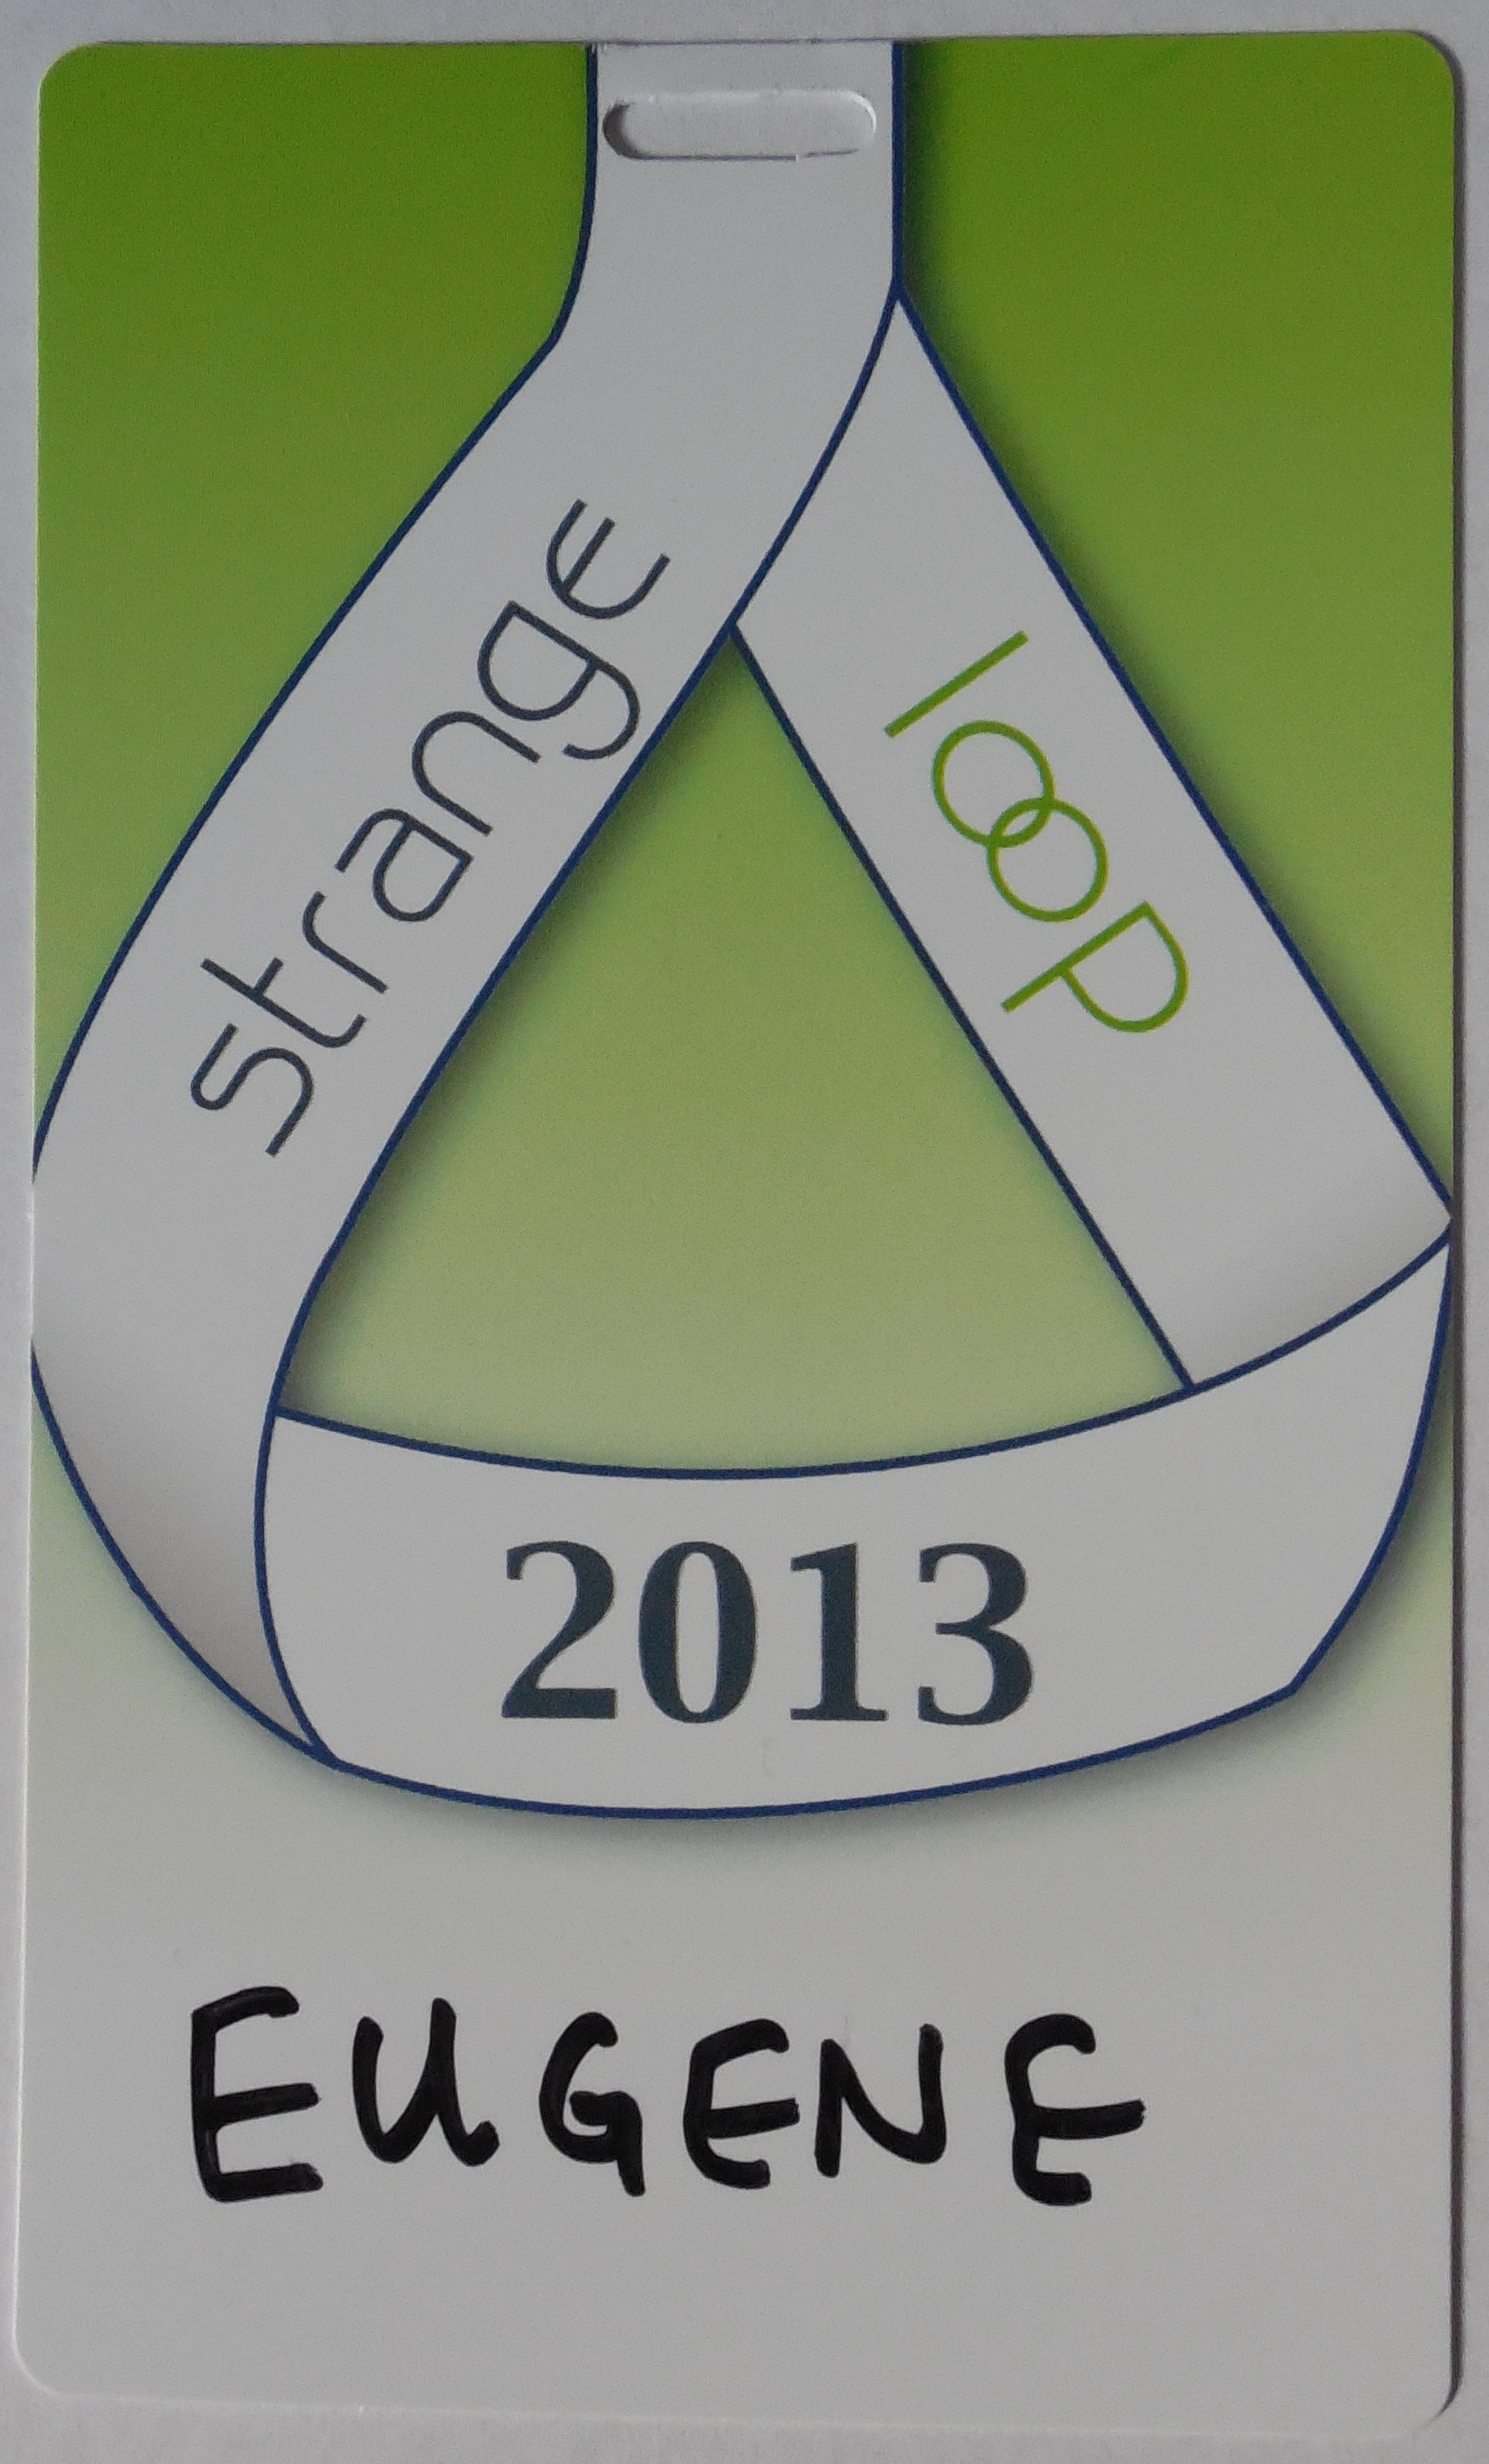 the front of my StrangeLoop 2013 badge